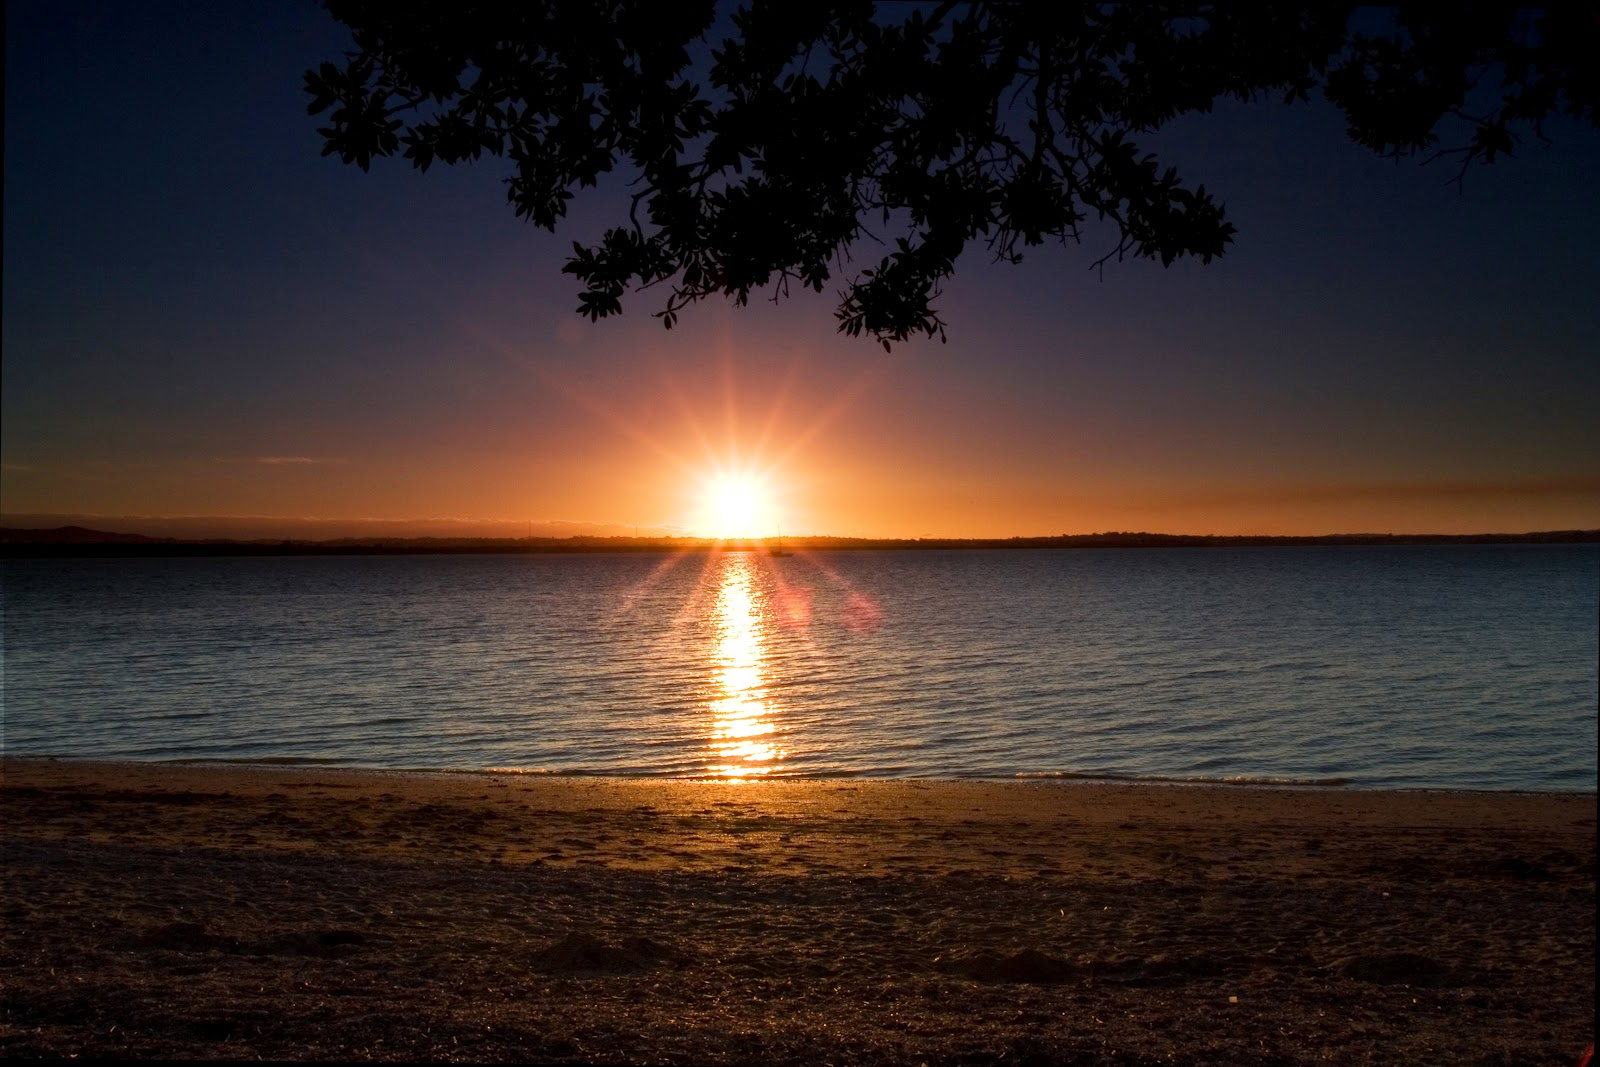 http://3.bp.blogspot.com/-SE1RSZCuyww/UEbA8dzKIGI/AAAAAAAABkI/8grTVLdSXYc/s1600/Beach_Sunset_at_Point_Chevalier_Beach_-_Auckland.jpg